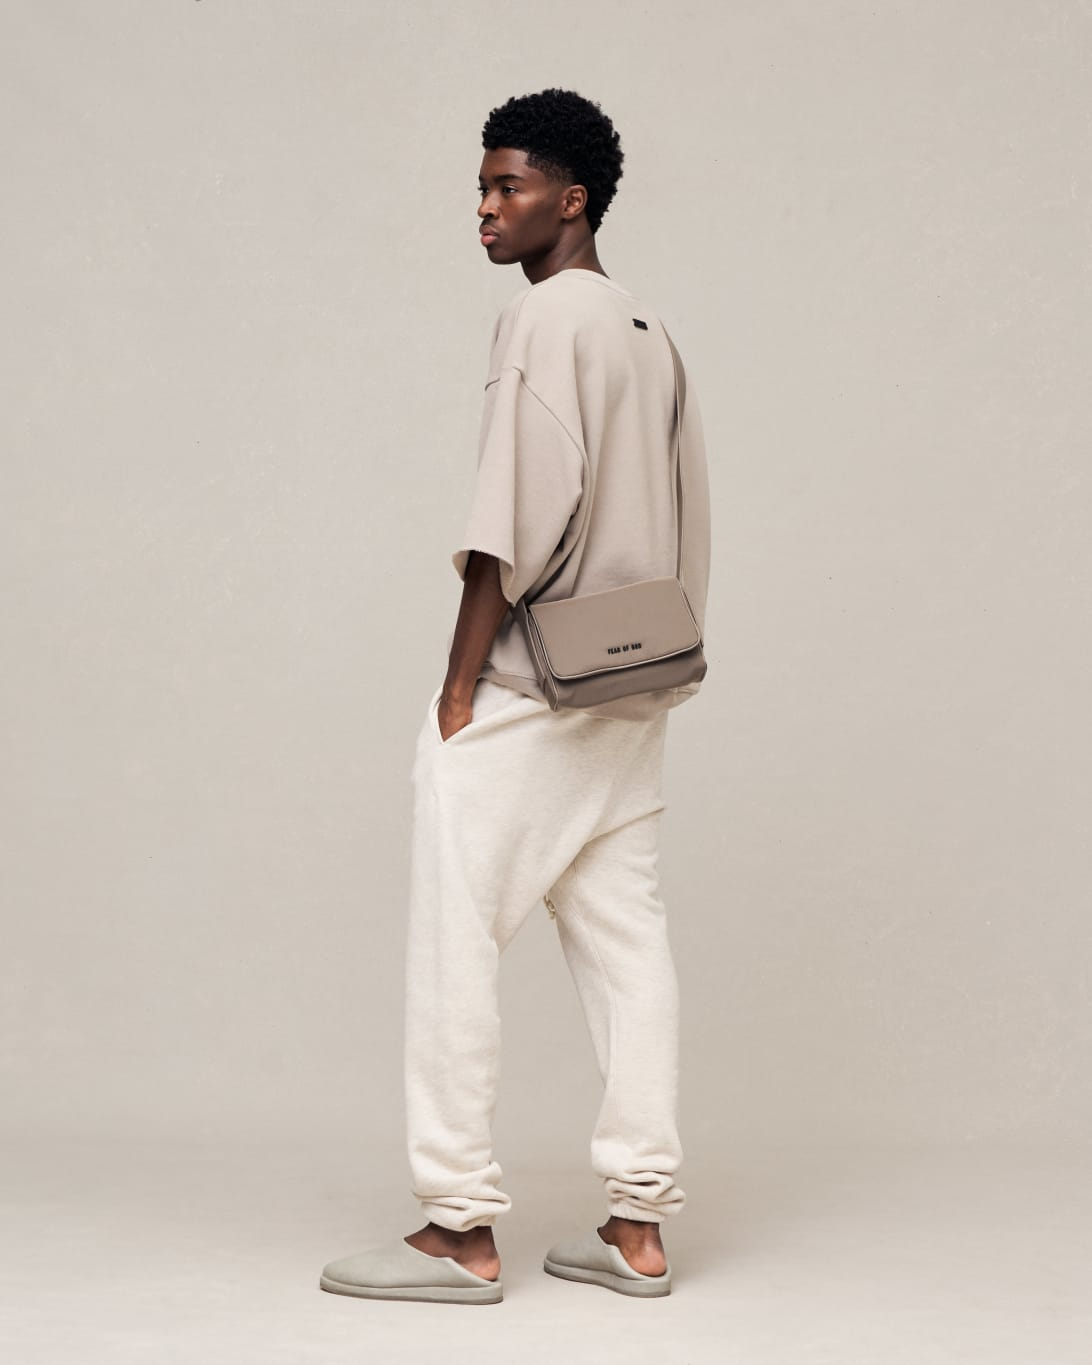 Seventh Collection | Fall/Winter Lookbook Look 05